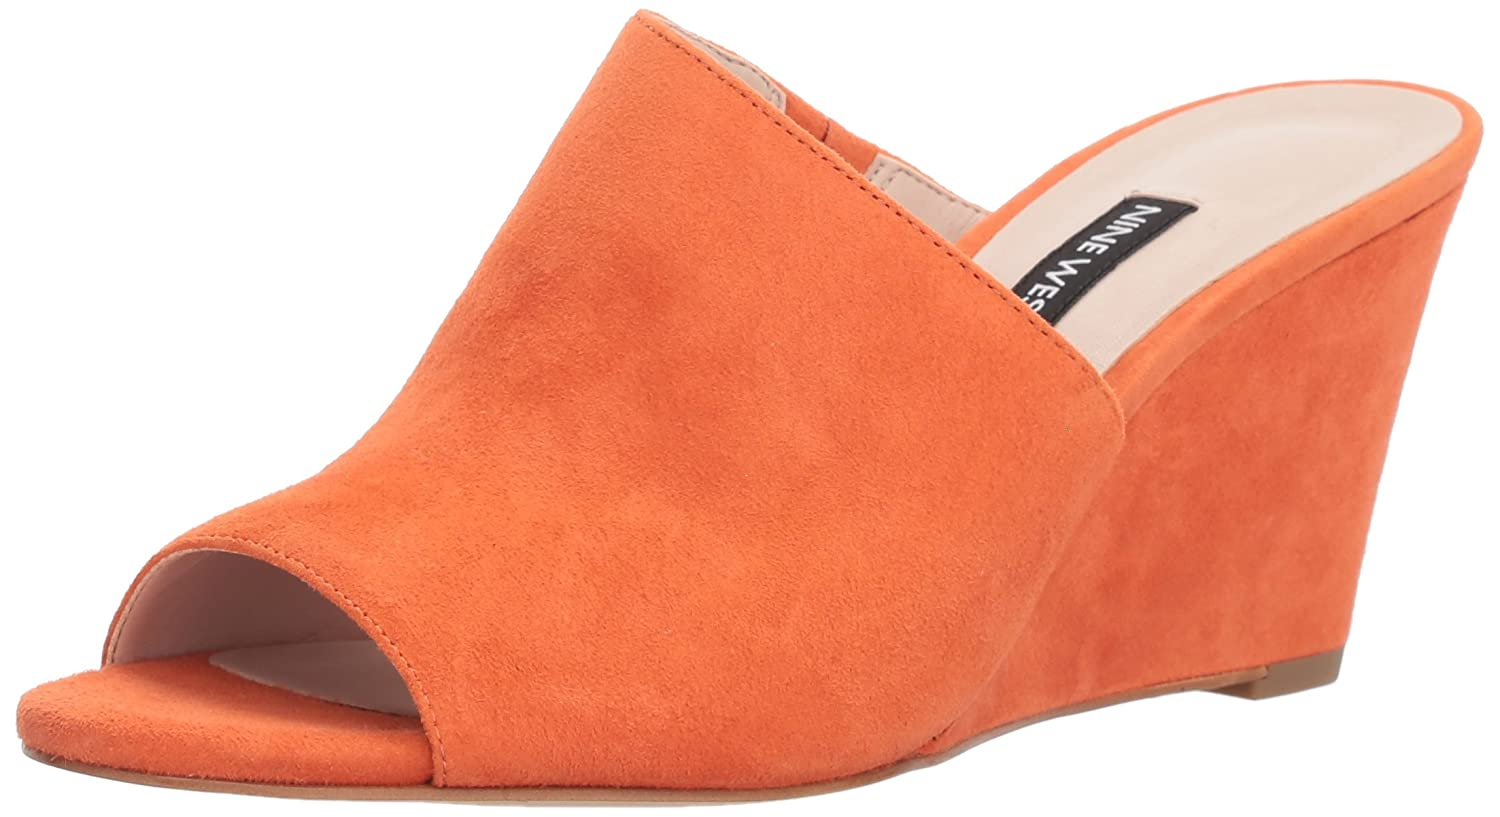 Nine West Women's Janissah Slide Sandal B079P5ZQ27 6 B(M) US|Orange Suede